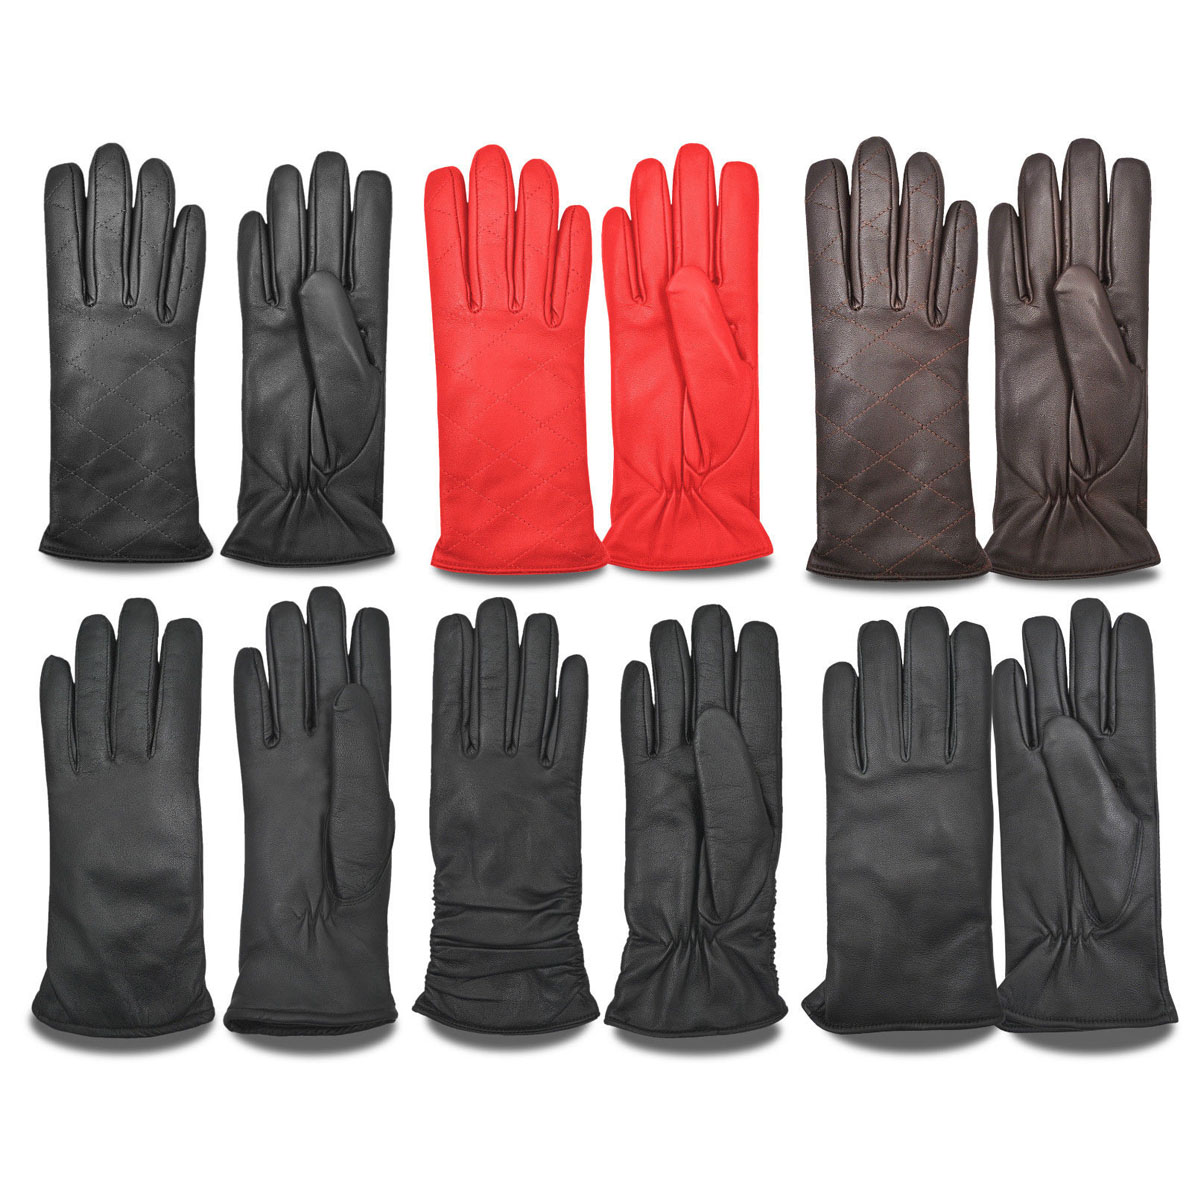 Dam Leather Weight Lifting Gym Gloves Real Leather Women S: WOMEN'S LEATHER WINTER DRIVING GLOVES CHAUFFEUR CAR BIKE